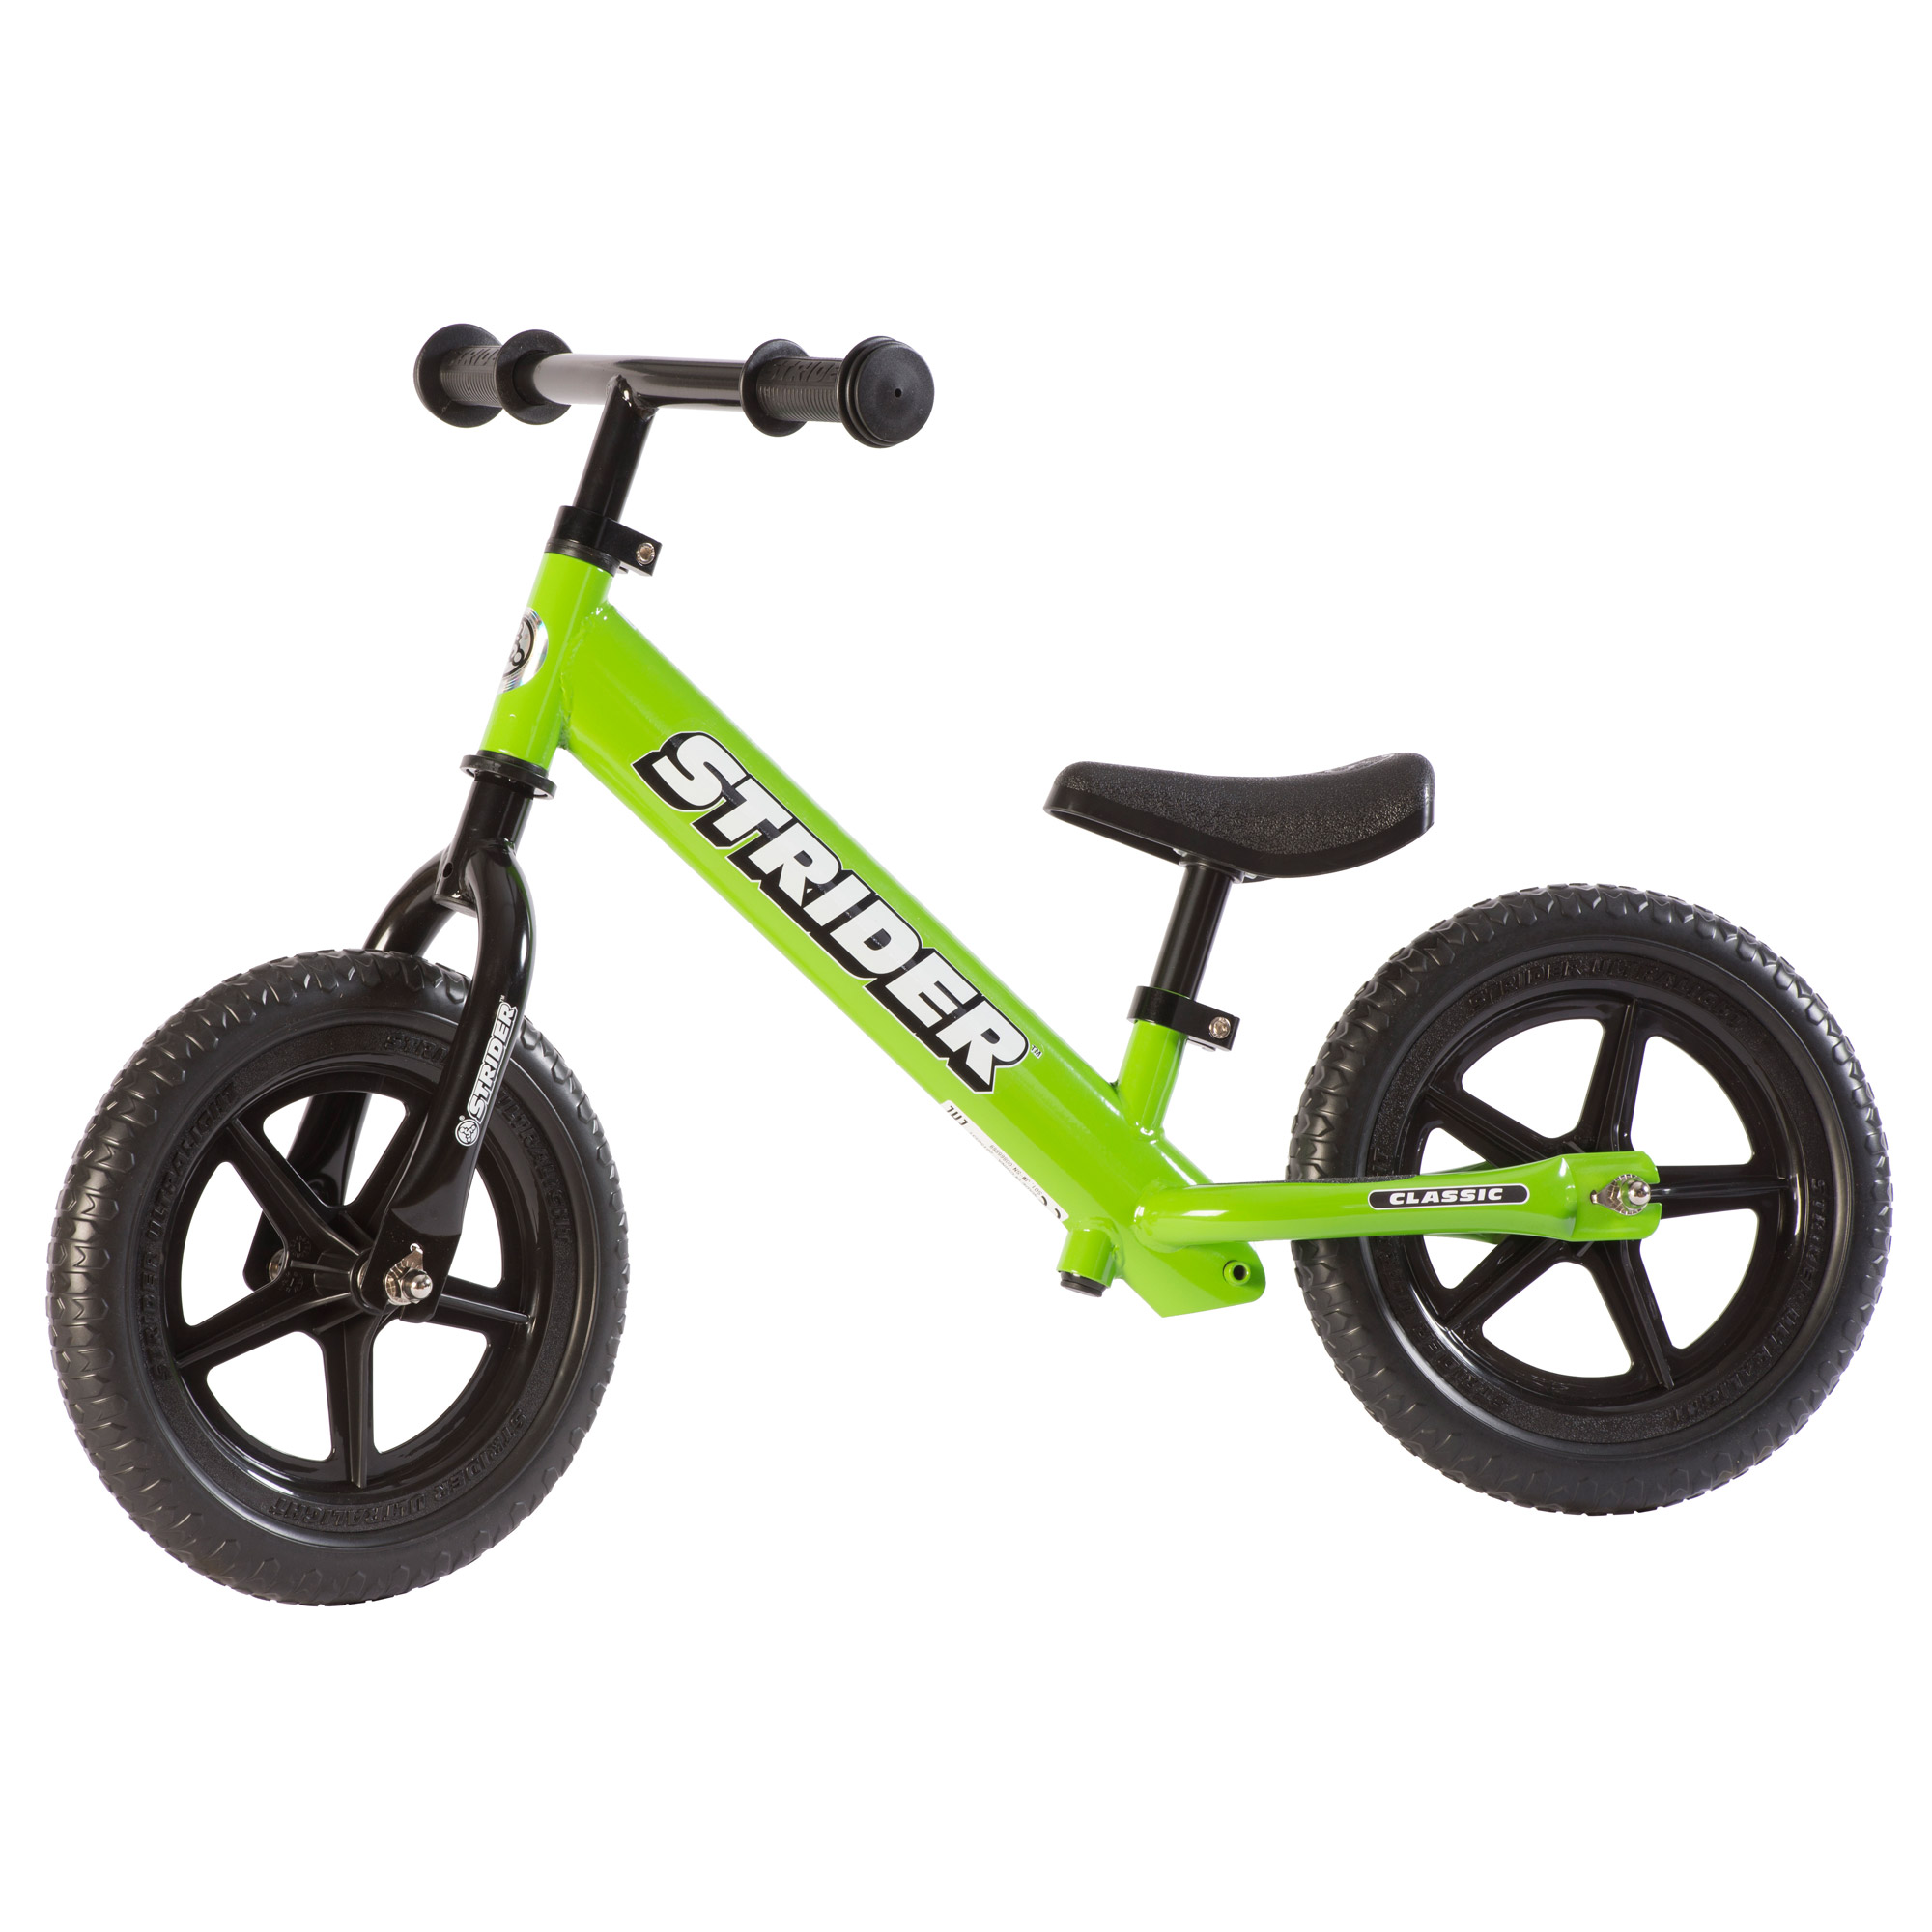 6bc0f89eedc Strider 12 Classic Entry Balance Bike for Toddler Kids 18 - 36 ...